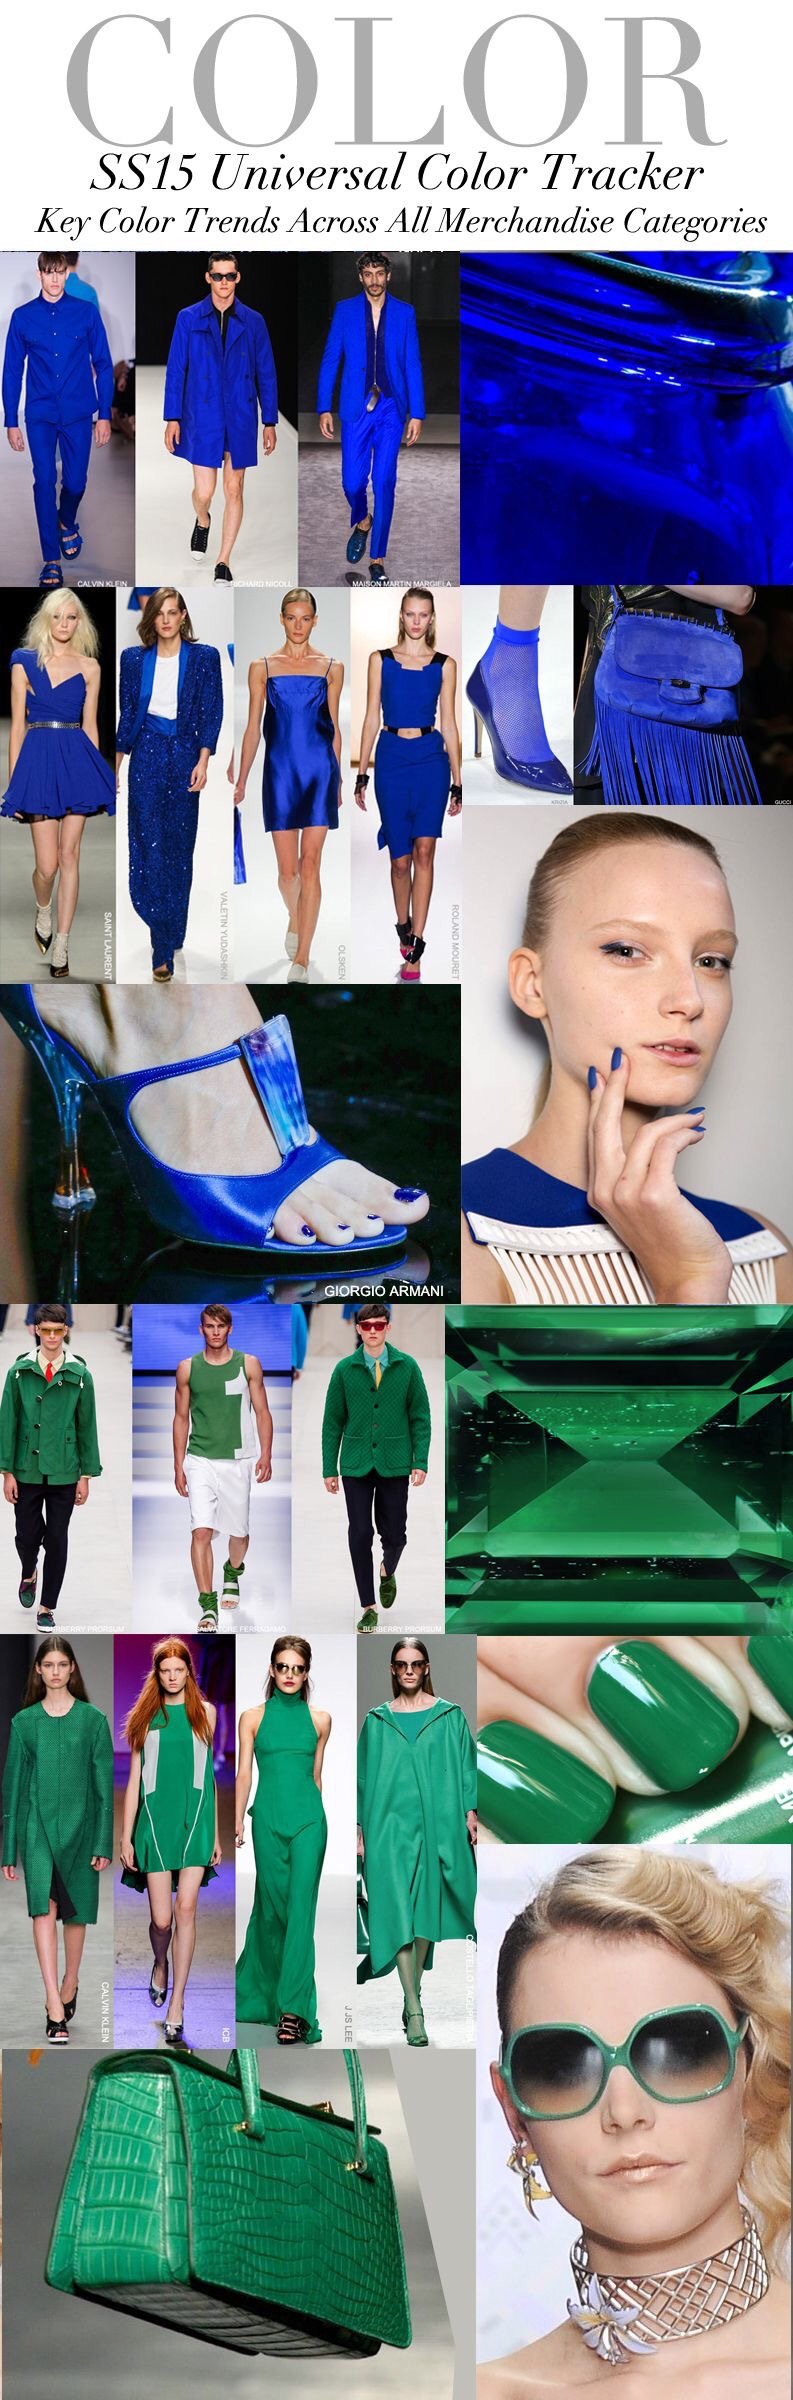 Trend Council Alert… Fashion for 2015/16.. Stay ahead😘